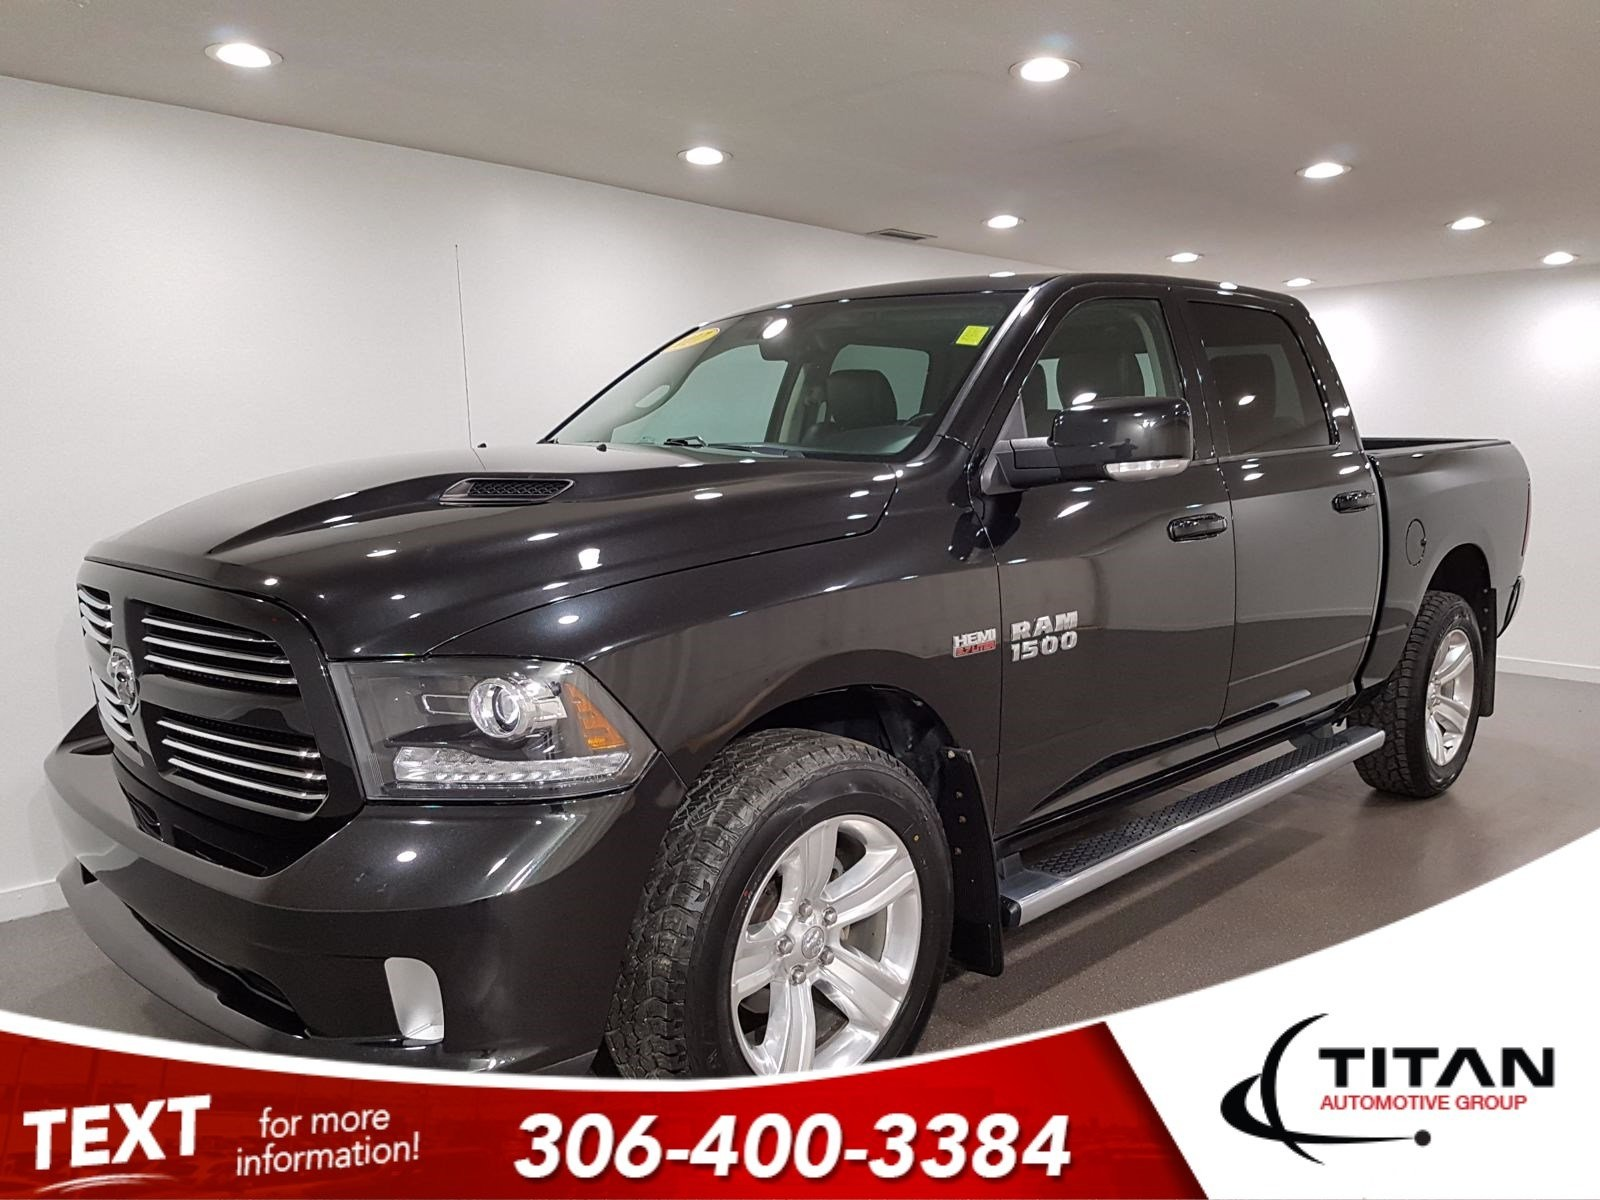 2016 Ram 1500 Schematic 2017 Ram 1500 Sport Local Hemi V8 Navigation Heated Cooled Leather Of 2016 Ram 1500 Schematic